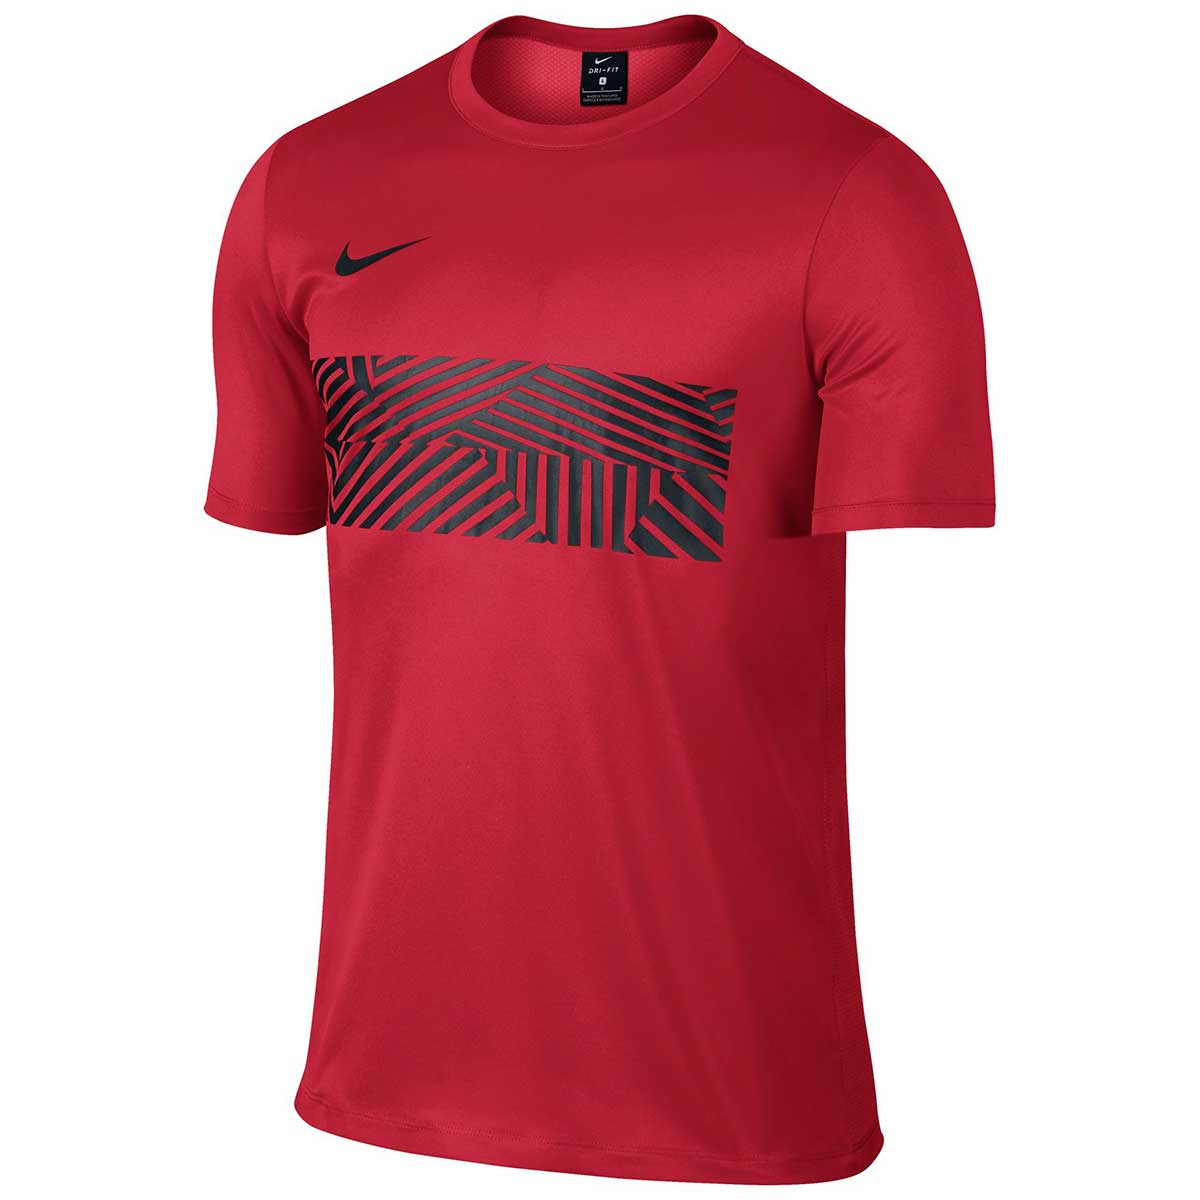 6f97e4cba Buy Nike Men's Dry Academy Top (Red) Online in India